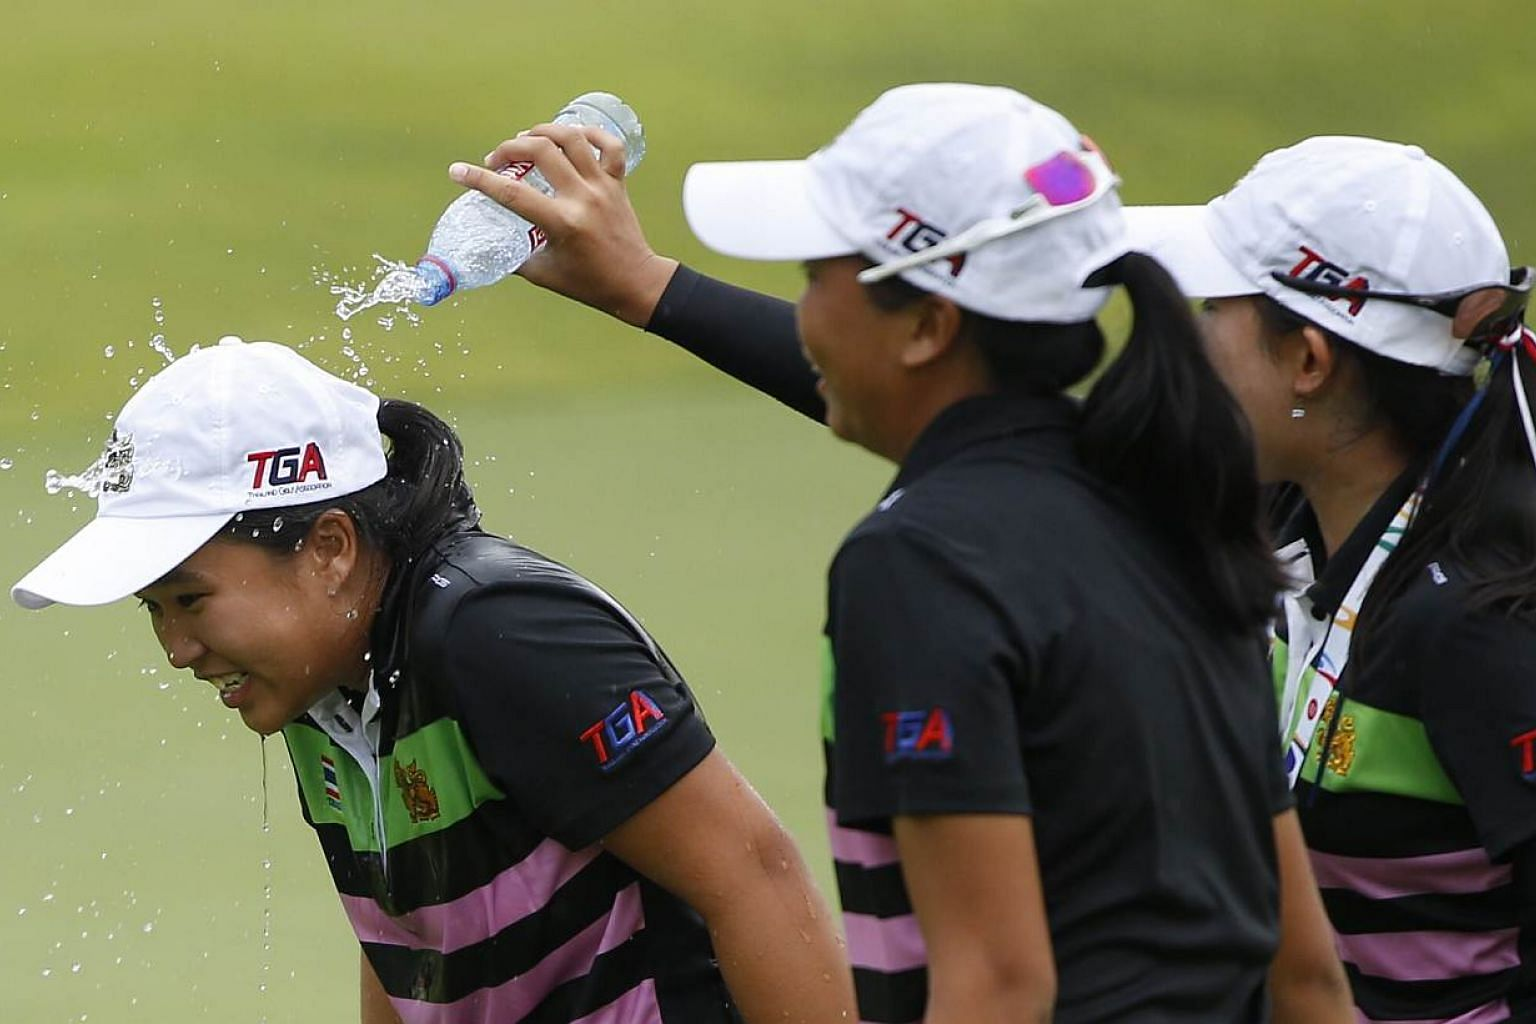 Thailand's Suthavee Chanachai is drenched in water by her teammates after winning the gold medal from the 28th SEA Games golf women's individual at Sentosa Golf course on June 12, 2015.-- ST PHOTO: KEVIN LIM